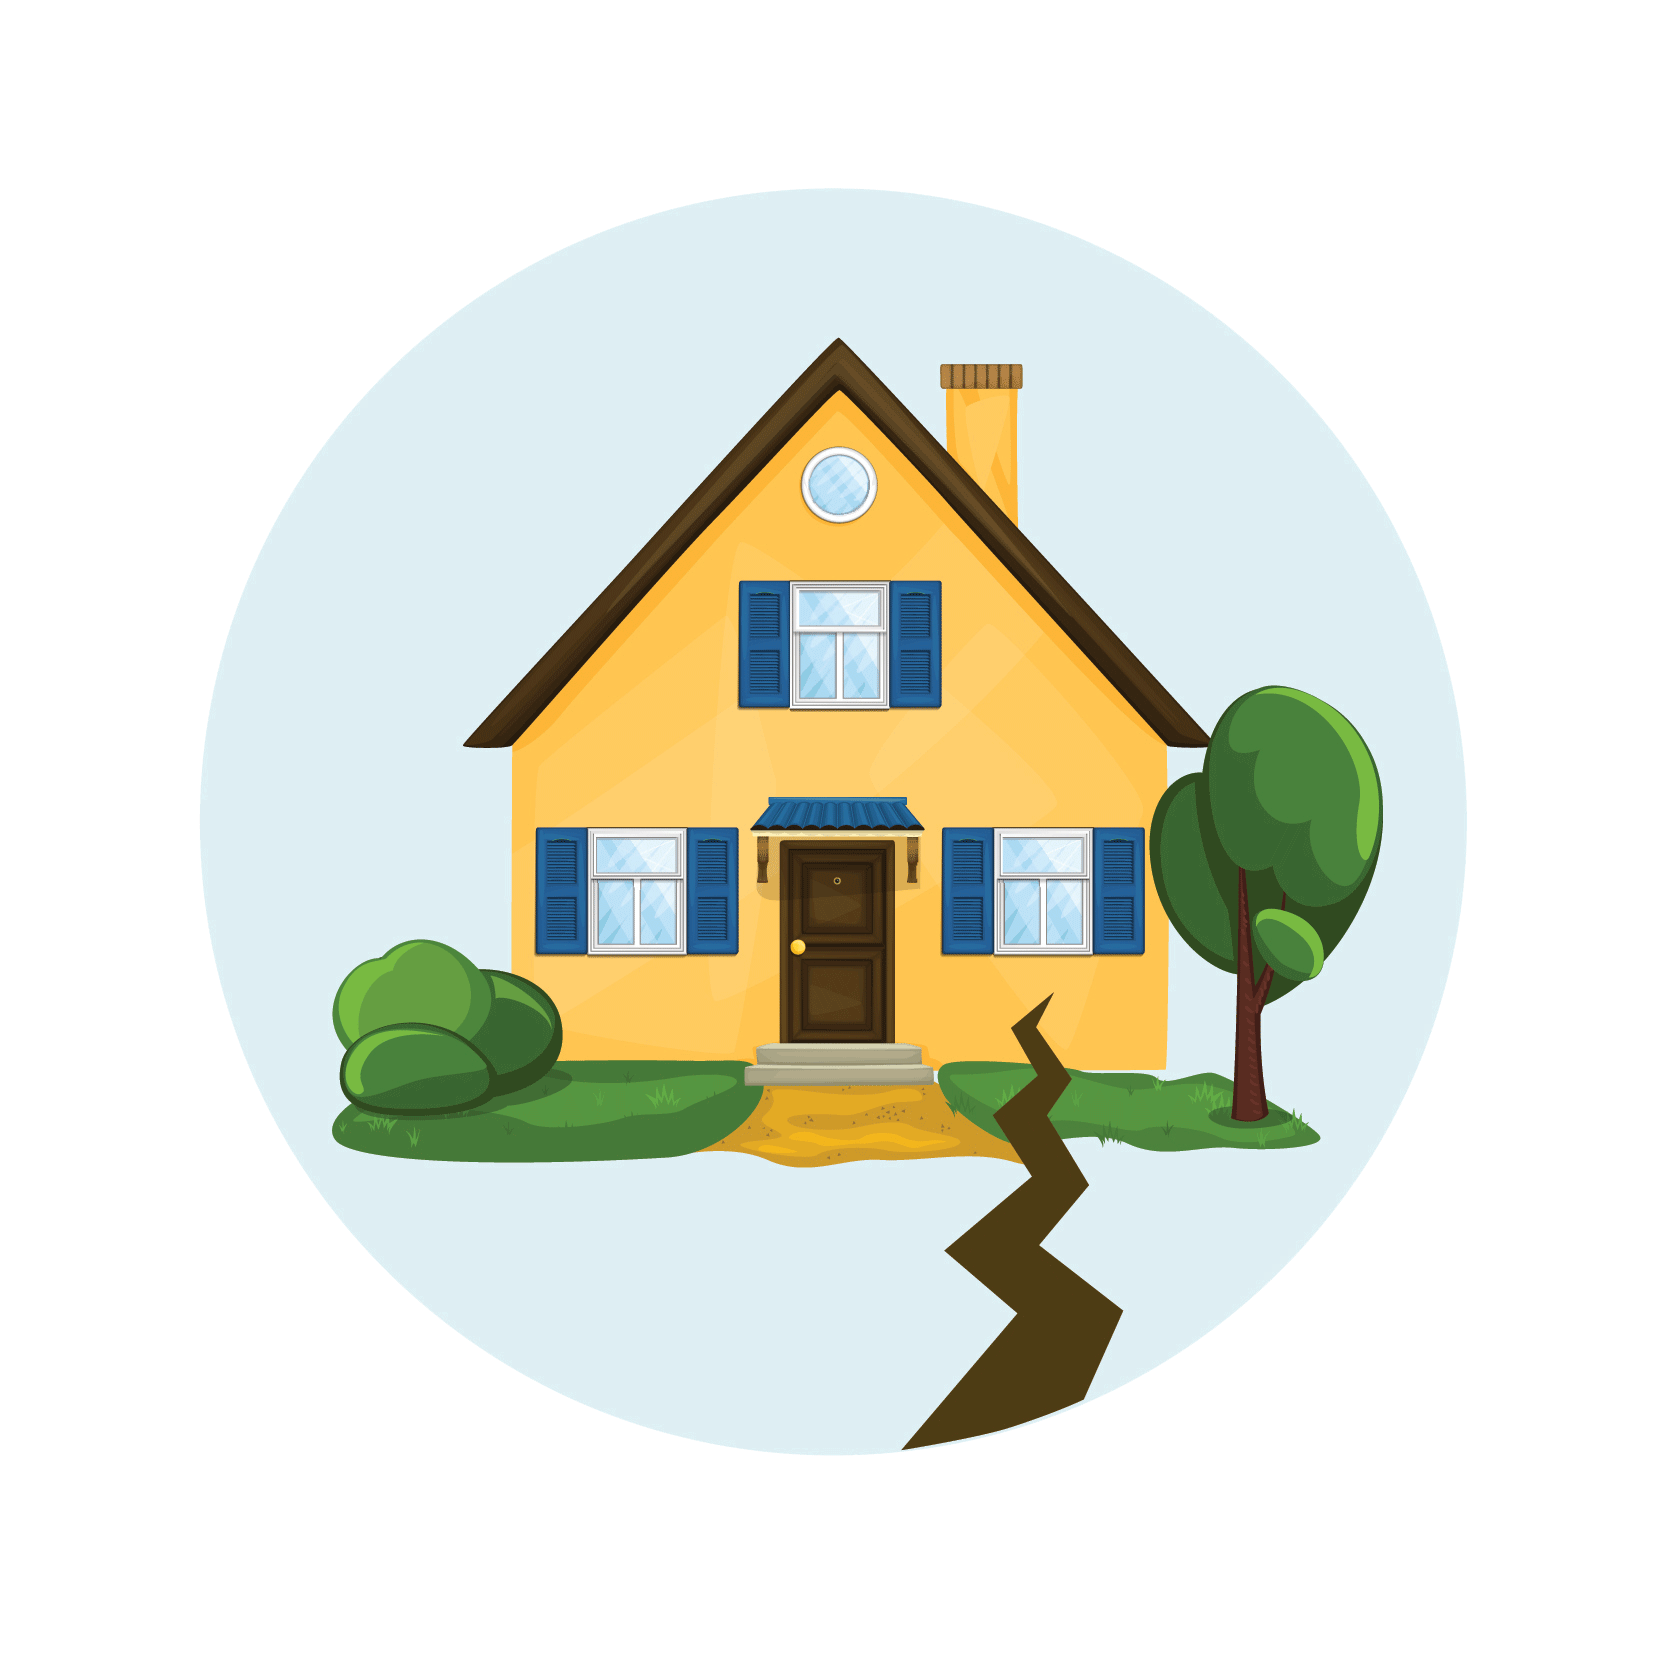 House clipart theft. Rush insurance services earthquake